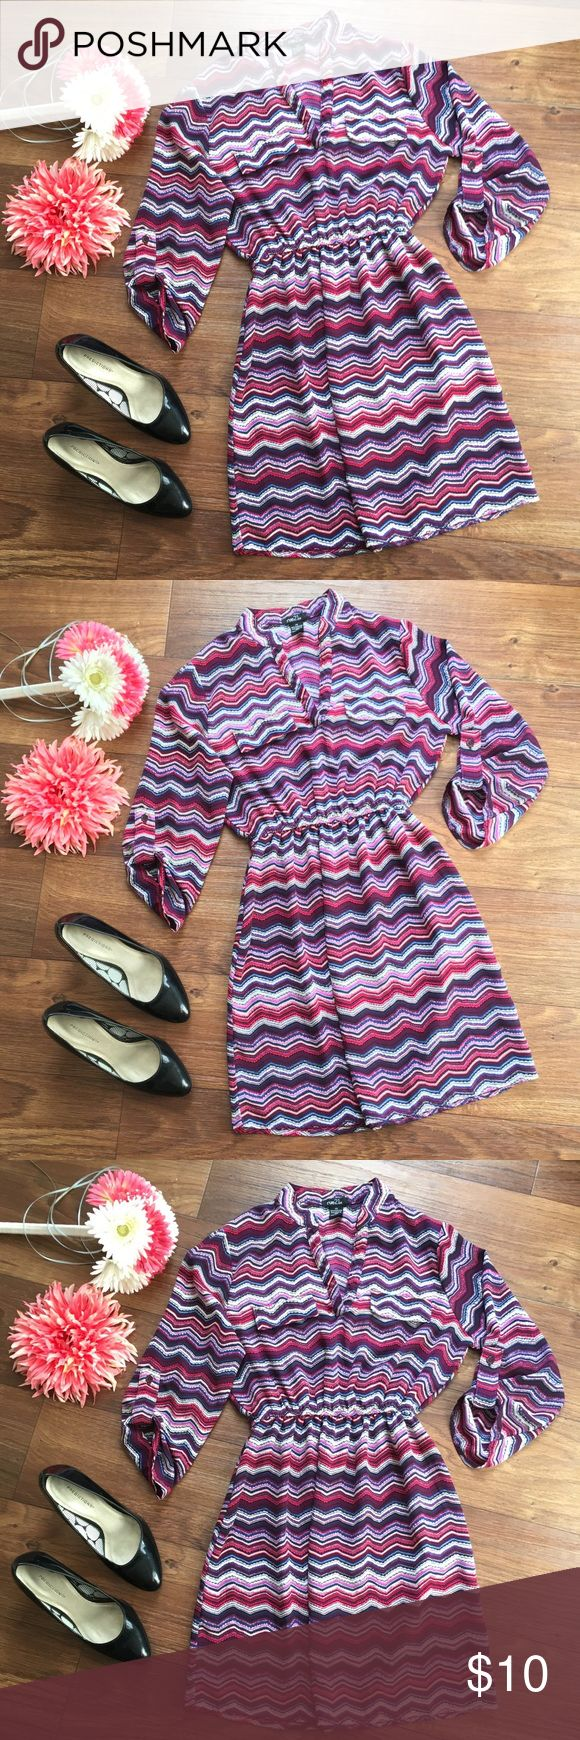 Rue 21 dress size XS Rue 21 dress size XS Super cute! -Doesn't fit me anymore :( worn 1-2 times  Colors: purple, blue, white, black, pink Rue 21 Dresses